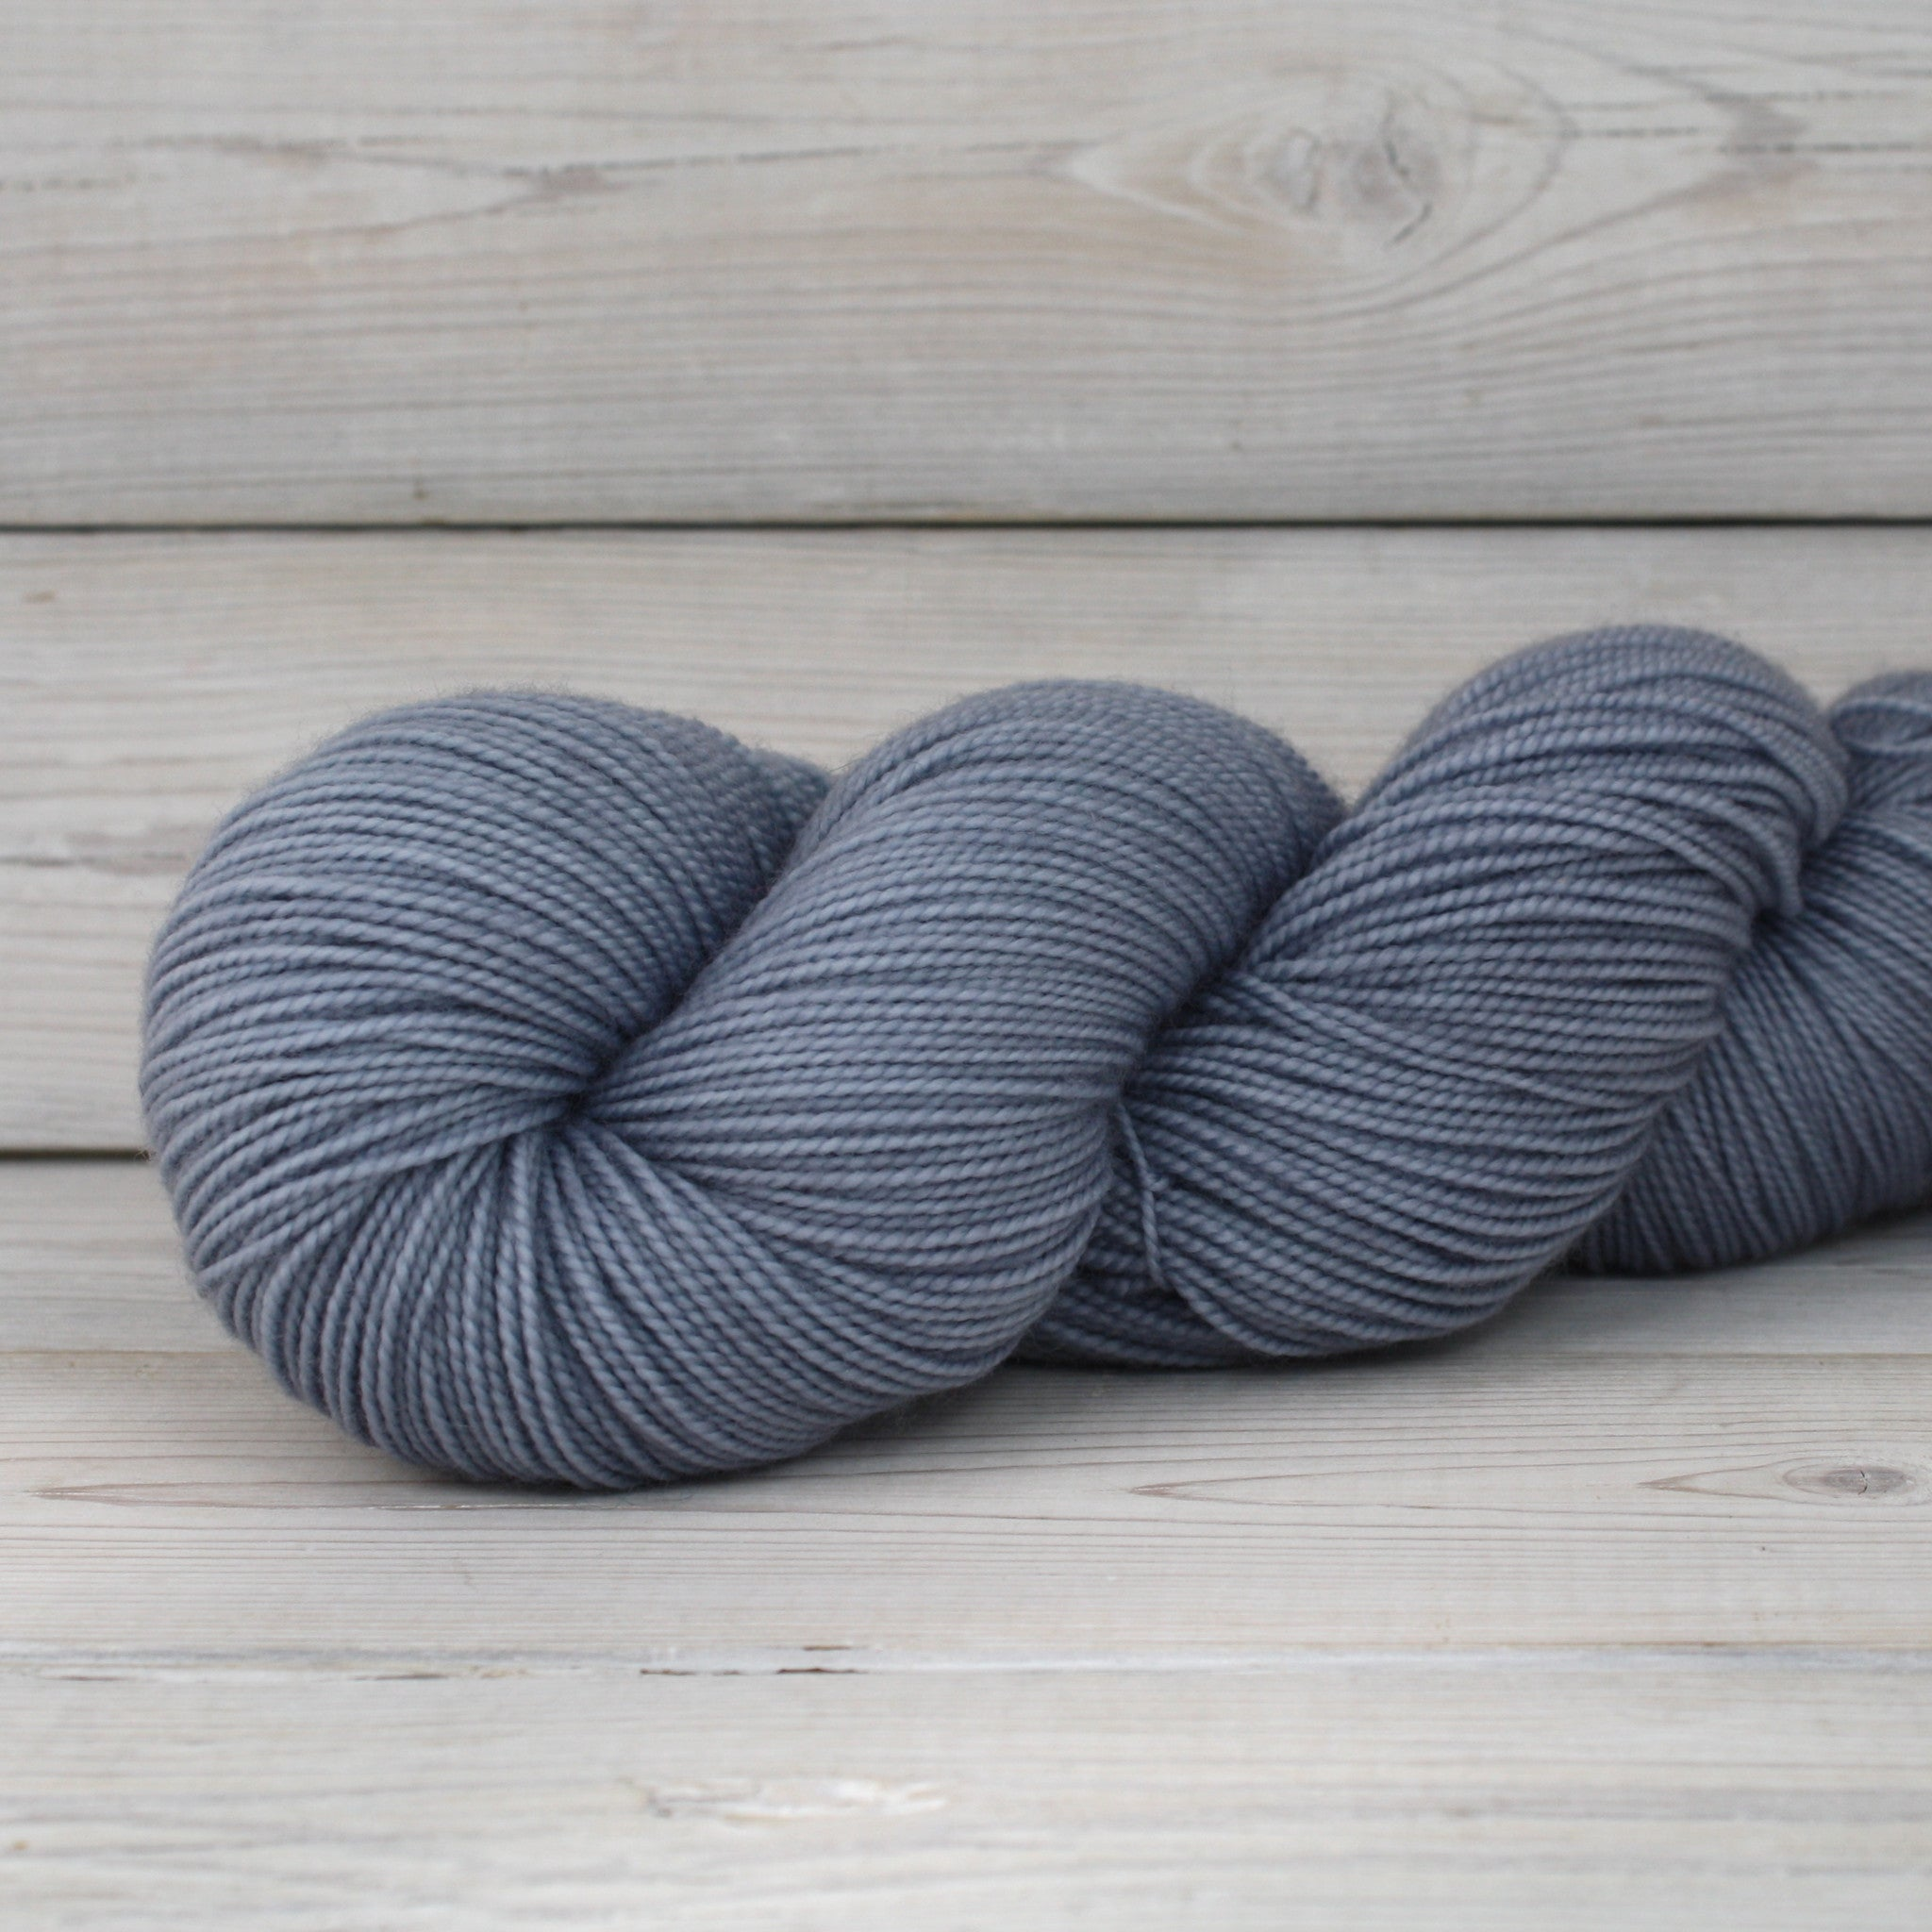 Colorway: Rain | Dyed to Order Yarn